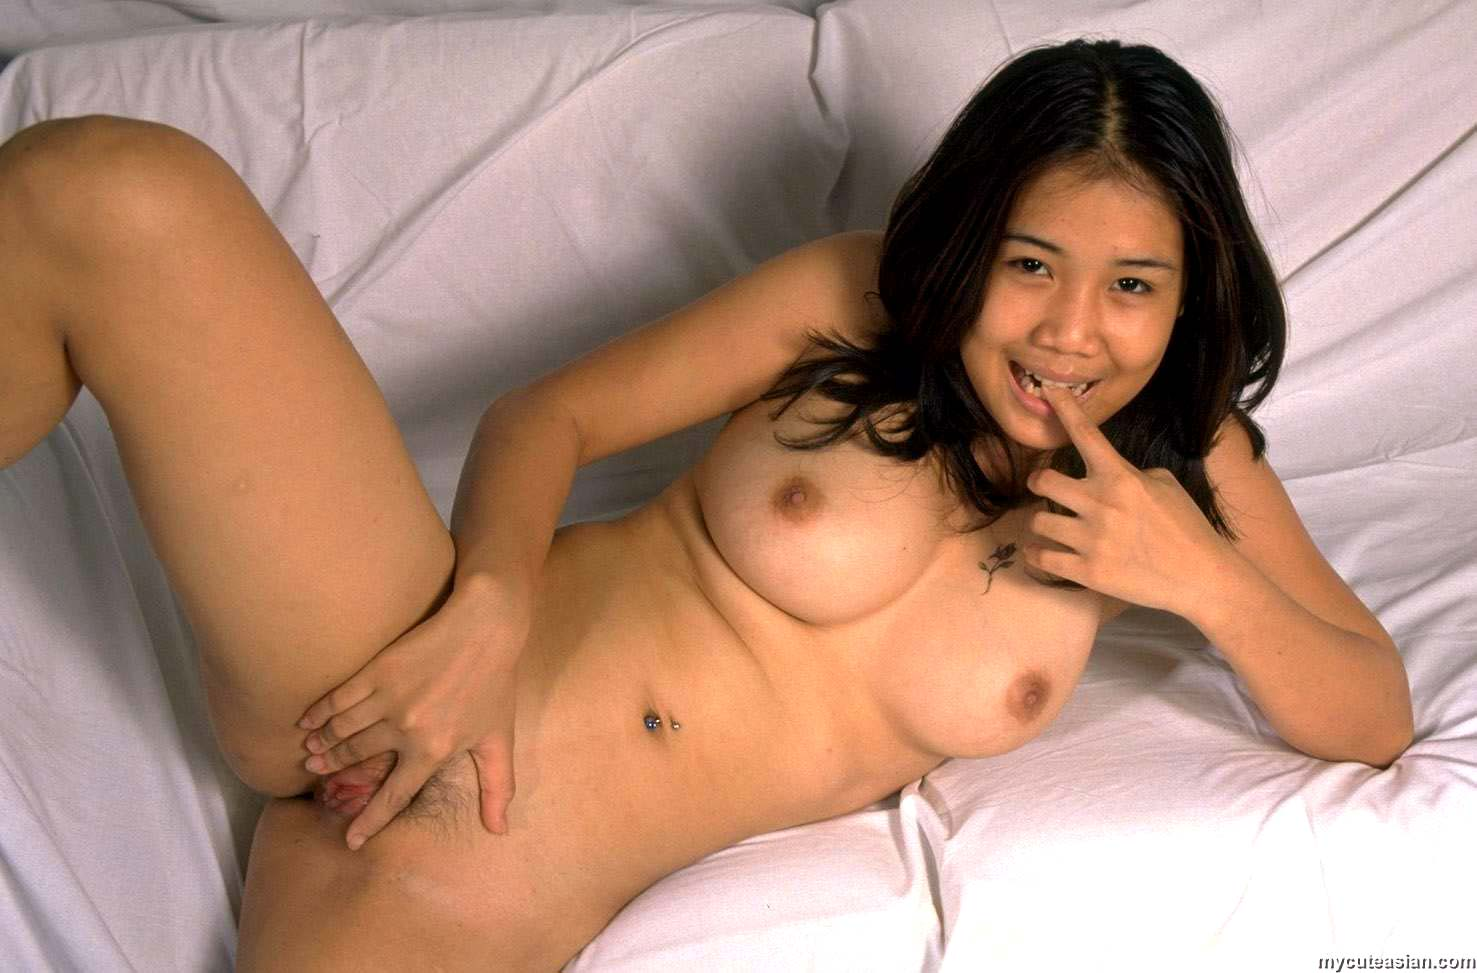 virven america nude sex photo